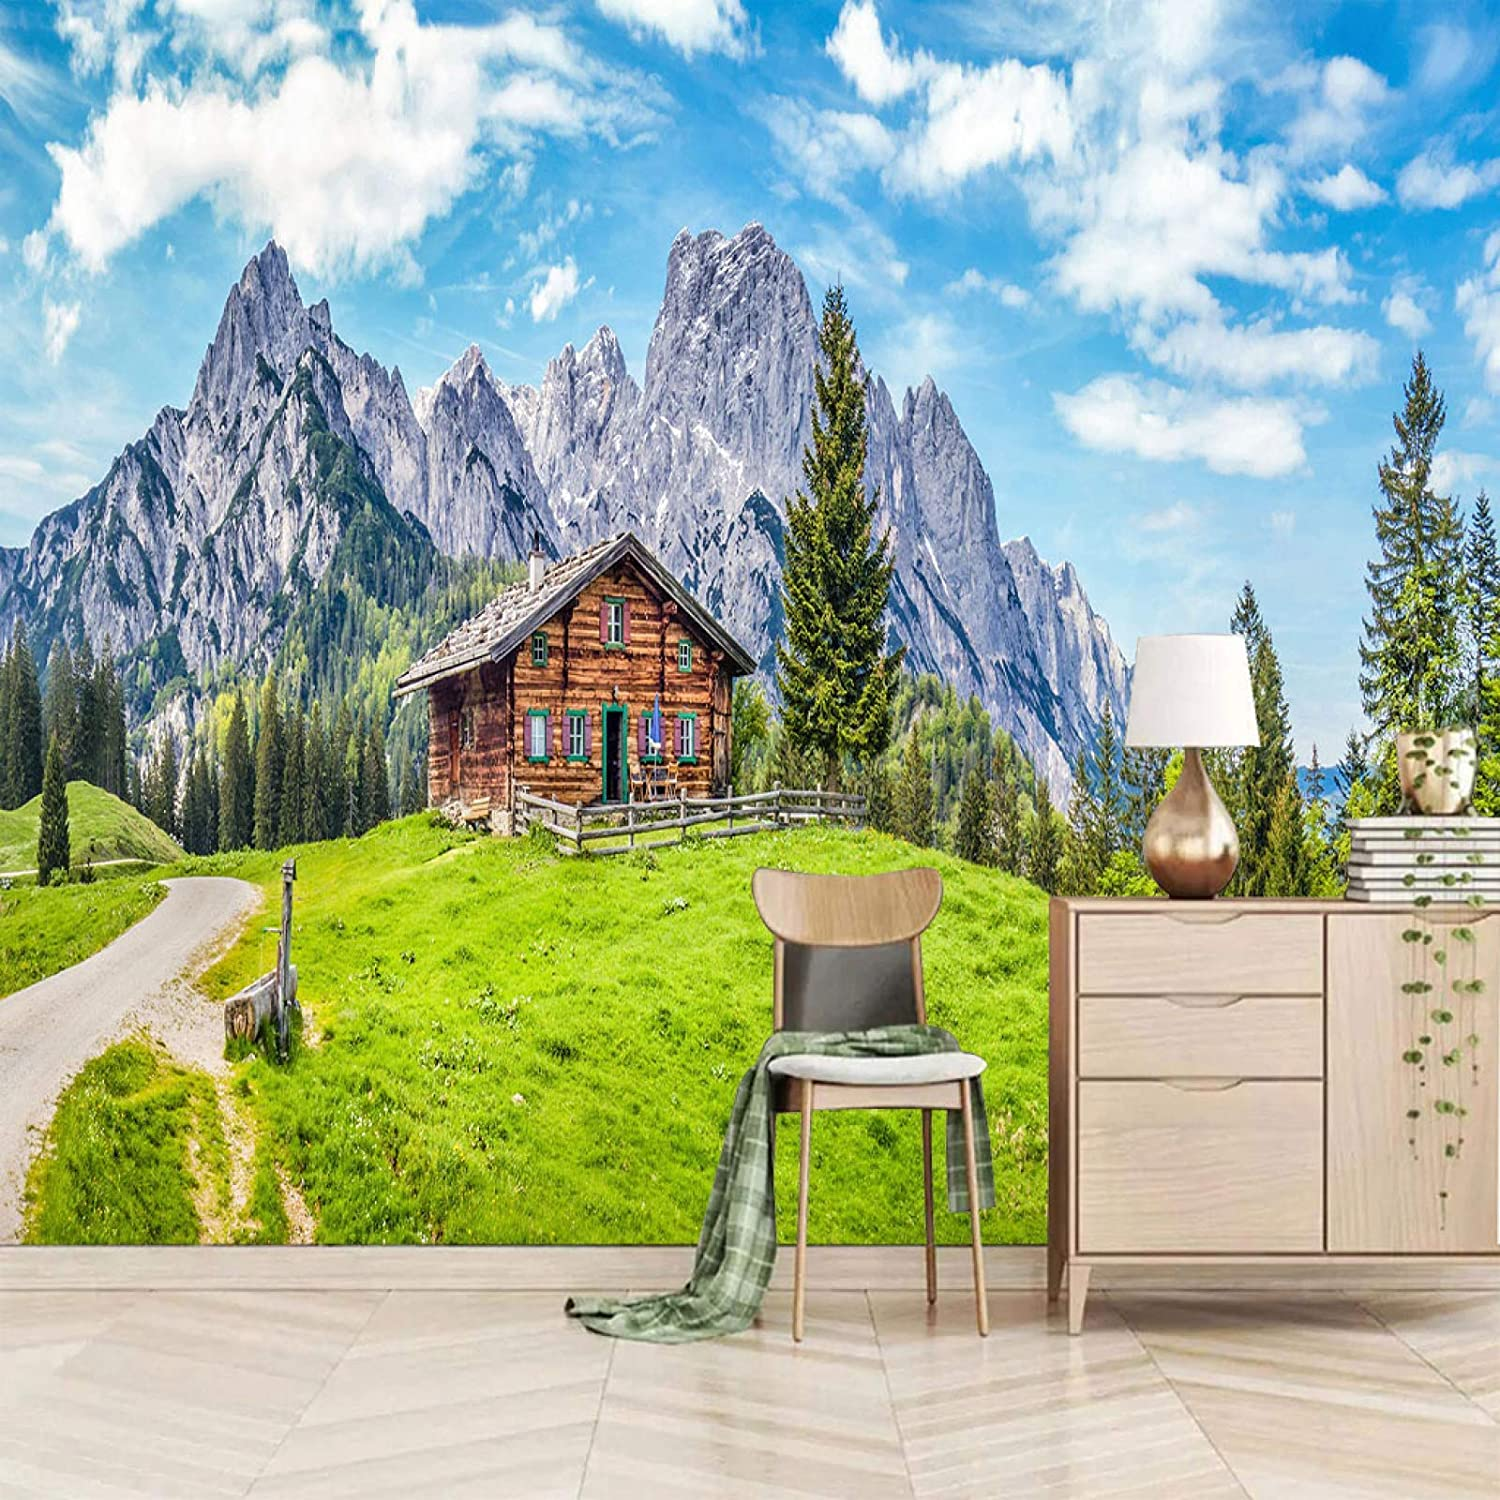 XiaoCha Mountains Green Sale item Grass Los Angeles Mall Houses Stick Self-Adhesive 3D Wall